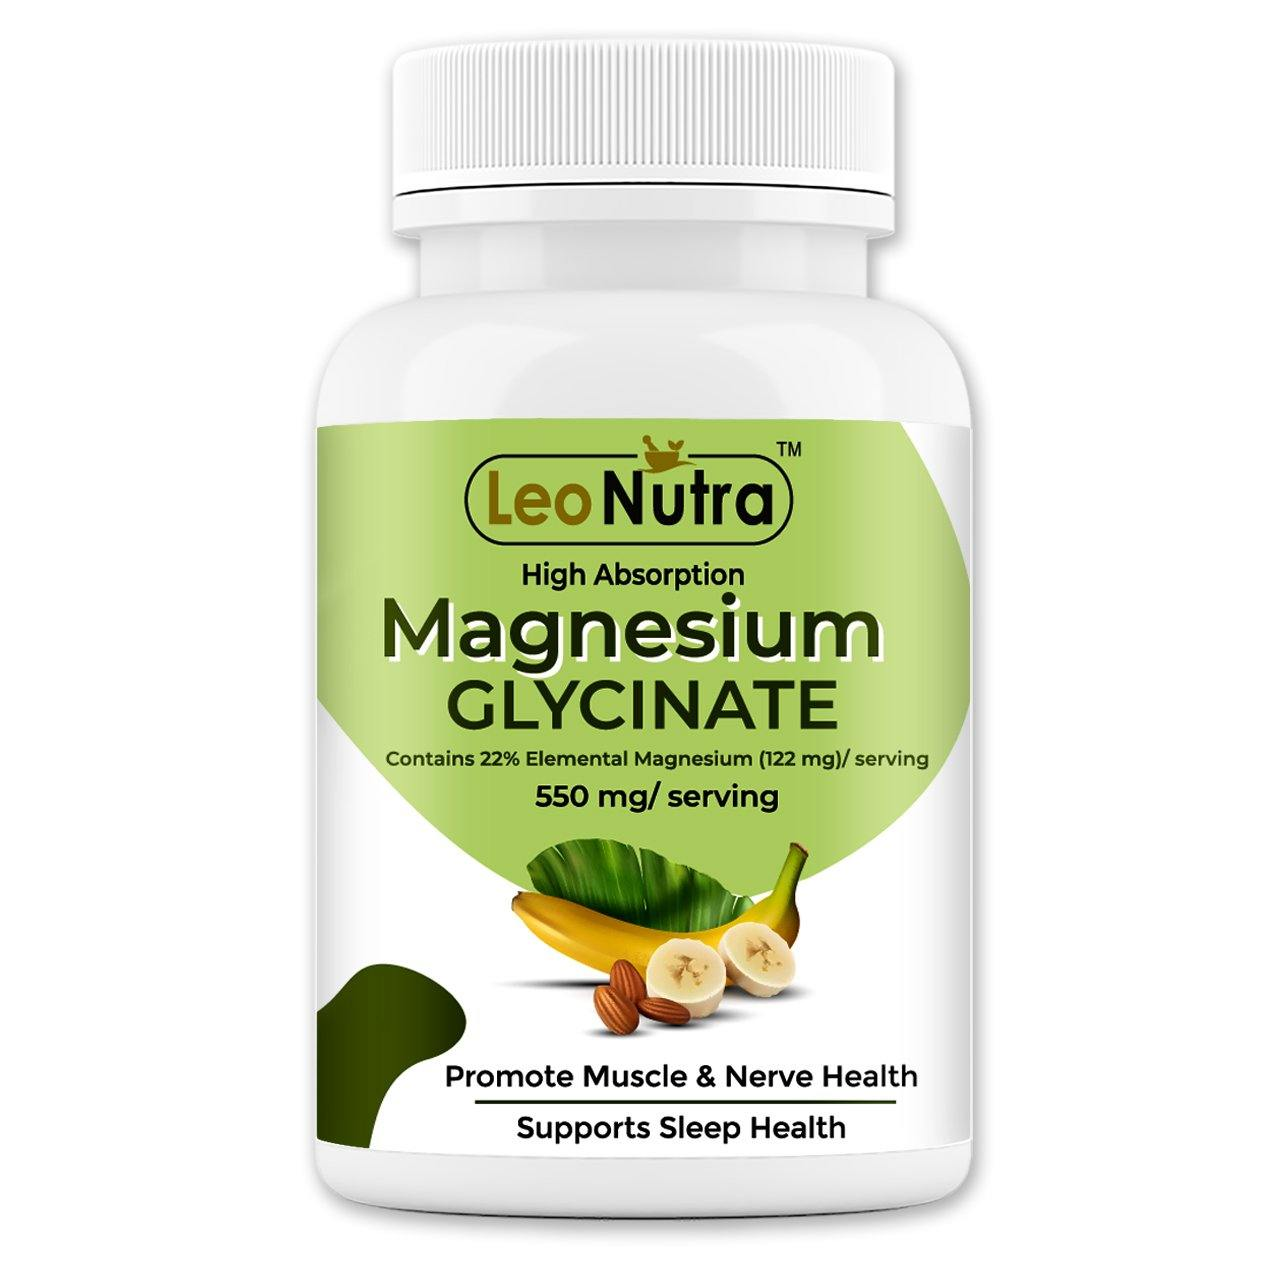 LeoNutra High Absorption Magnesium Glycinate, 550 mg - 120 Tablets